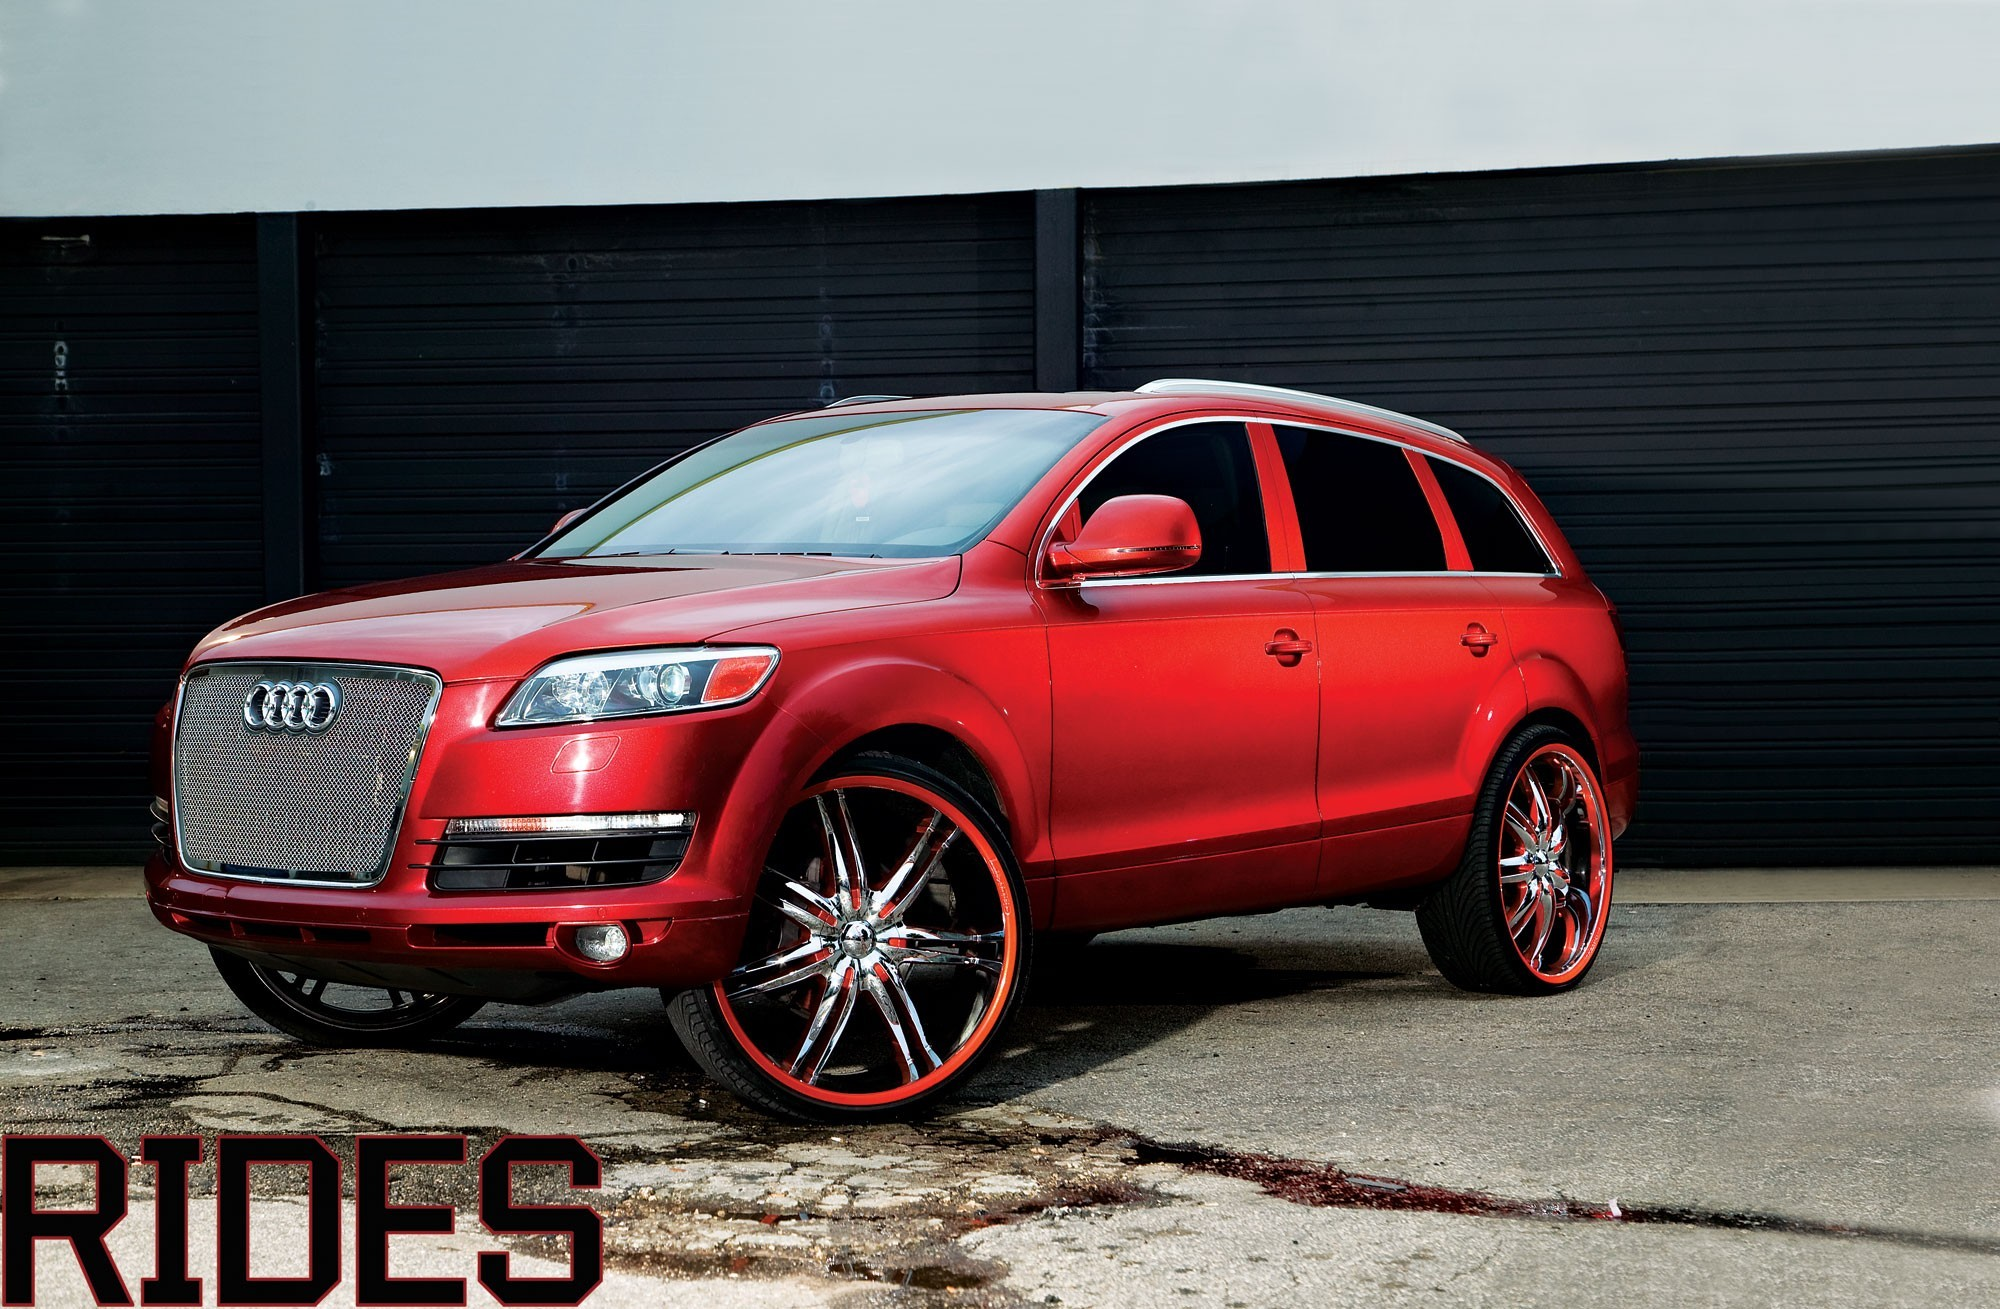 tuning wheels red cars HD Wallpaper